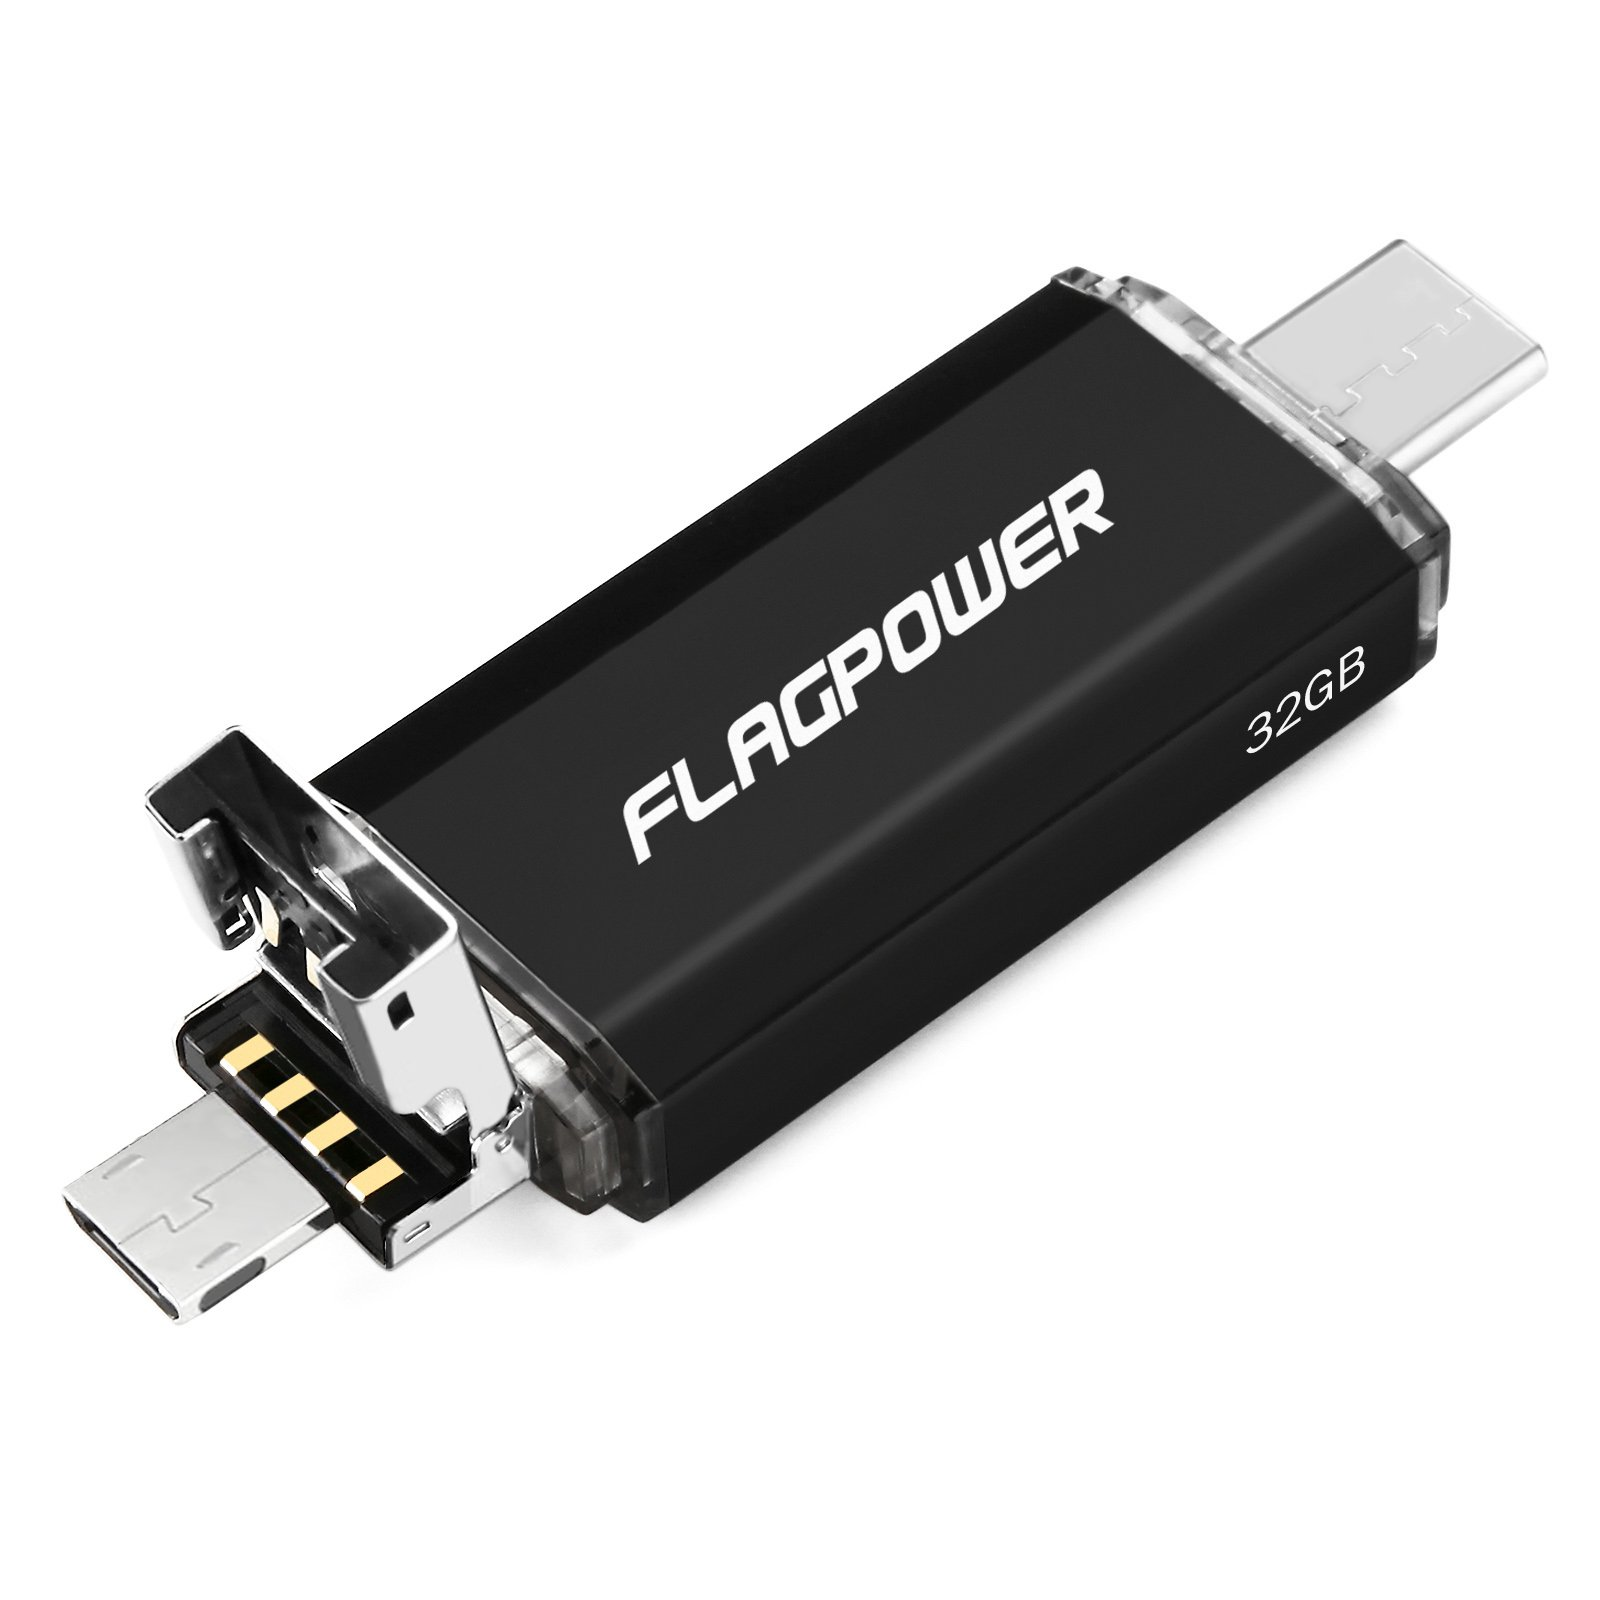 USB Flash Drive,FLAGPOWER 3 in 1 USB Tpye-C Miro USB High Speed Memory Storage Drive for Android SmartPhone/Tablets, Apple Macbook, Google Chromebook Pixel, Samsung Nokia N1 Tablet 32GB